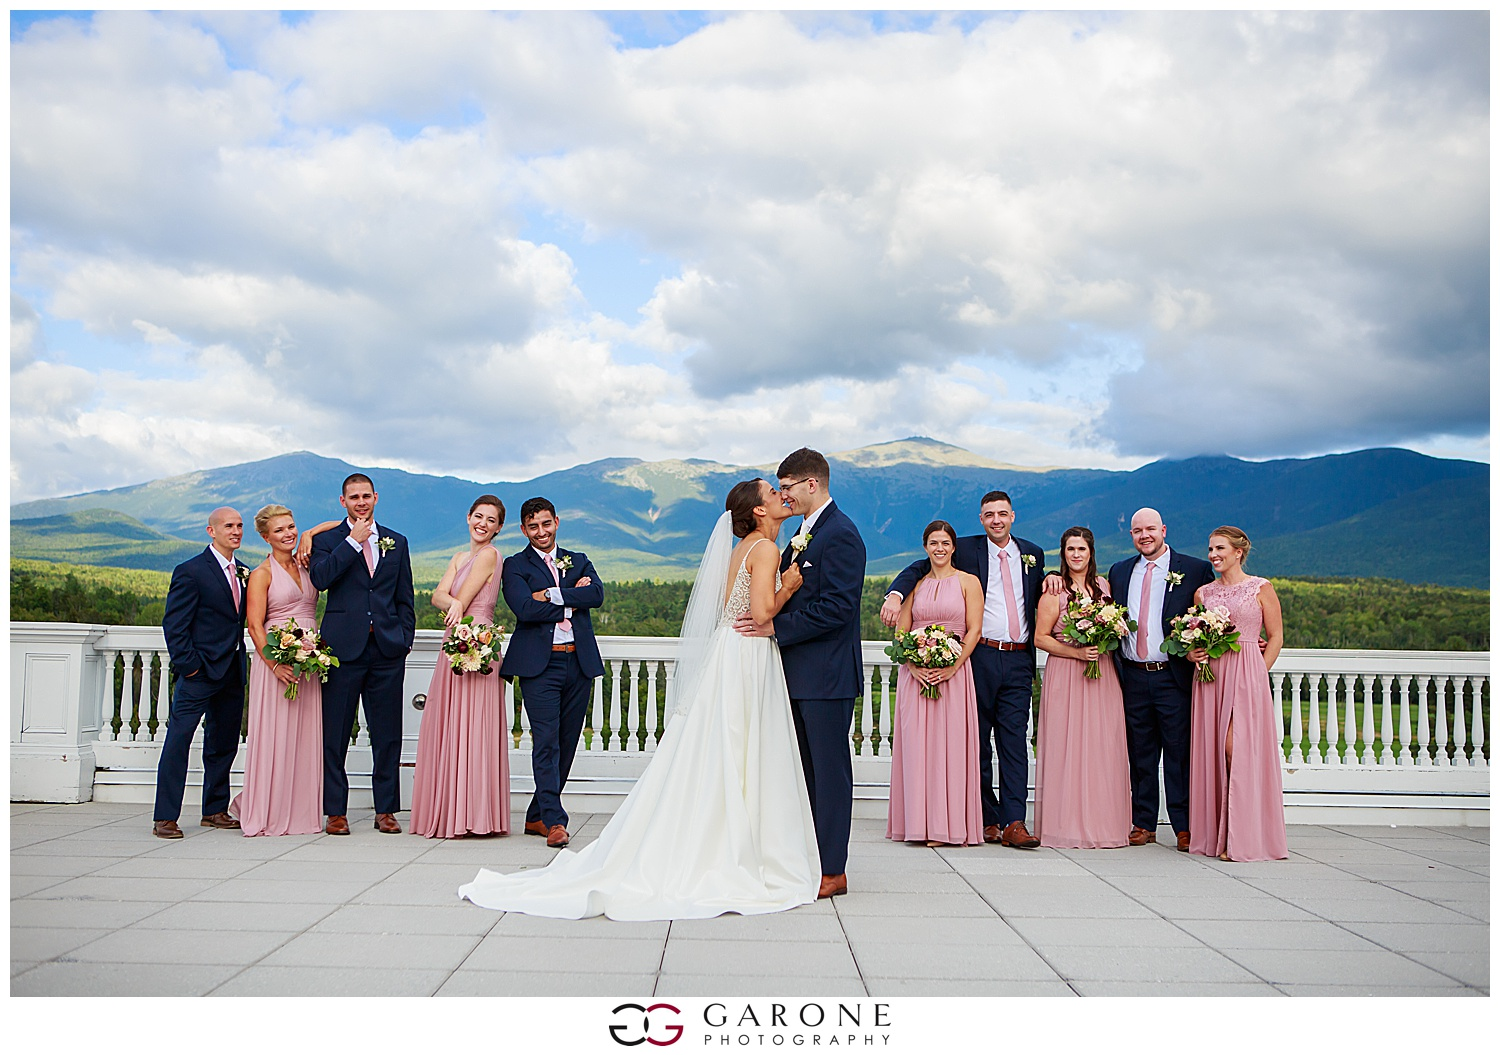 Omni_Mount_Washington_hotel_Wedding_White_Mountain_Wedding_Garone_Photography_0025.jpg